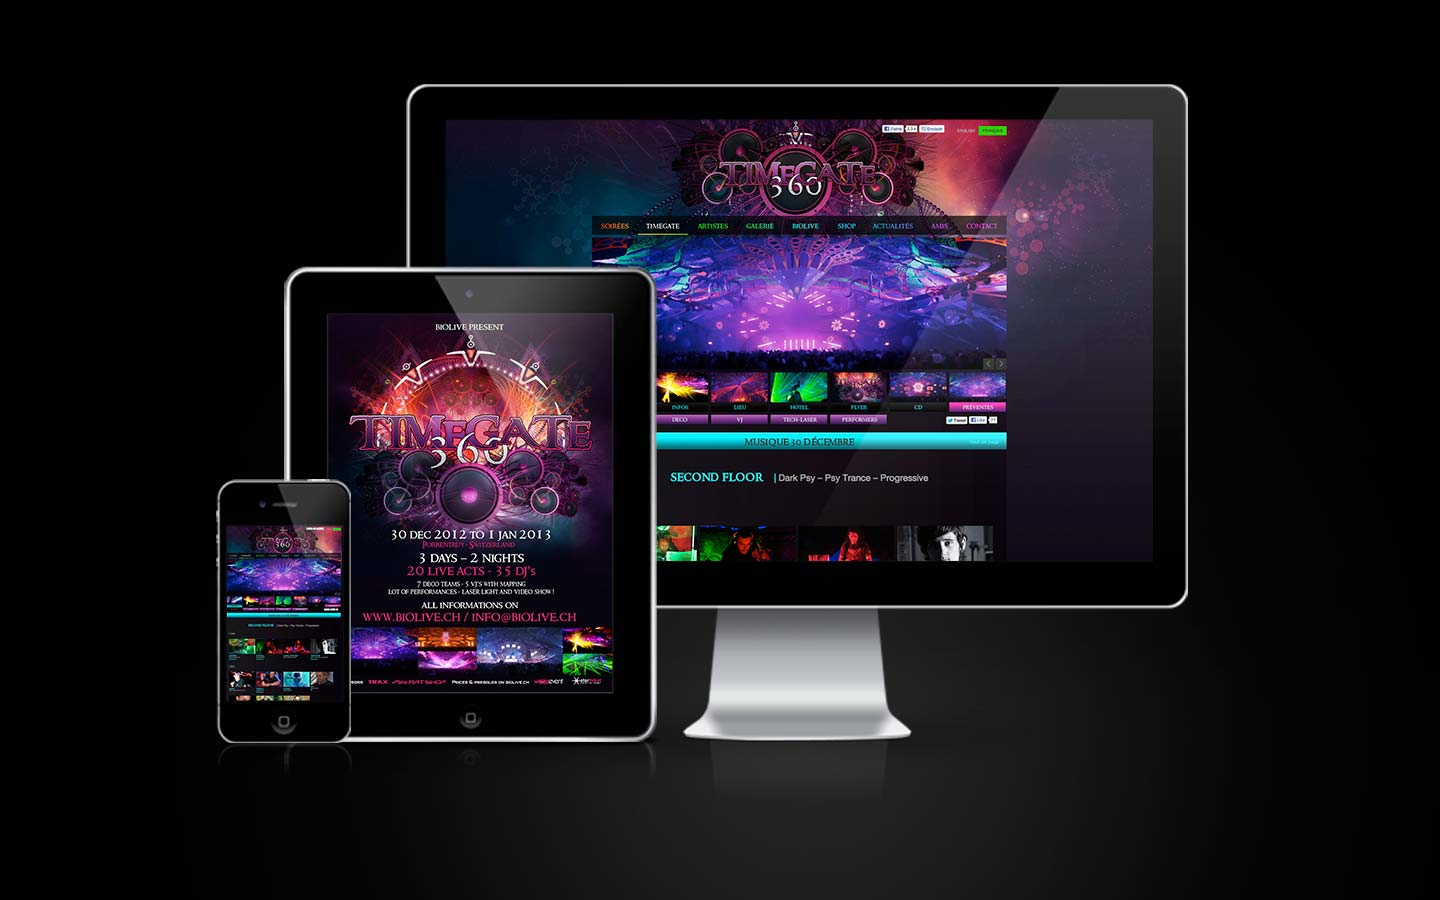 TimeGate 360 Website - WordPress - Web Design - Webdesign - Laurent Lemoigne - Donanubis - Don Anubis - Biolive - Switzerland - Psytrance - Psy - Psychedelic - Trance - Party - Festival - Event - Flyer